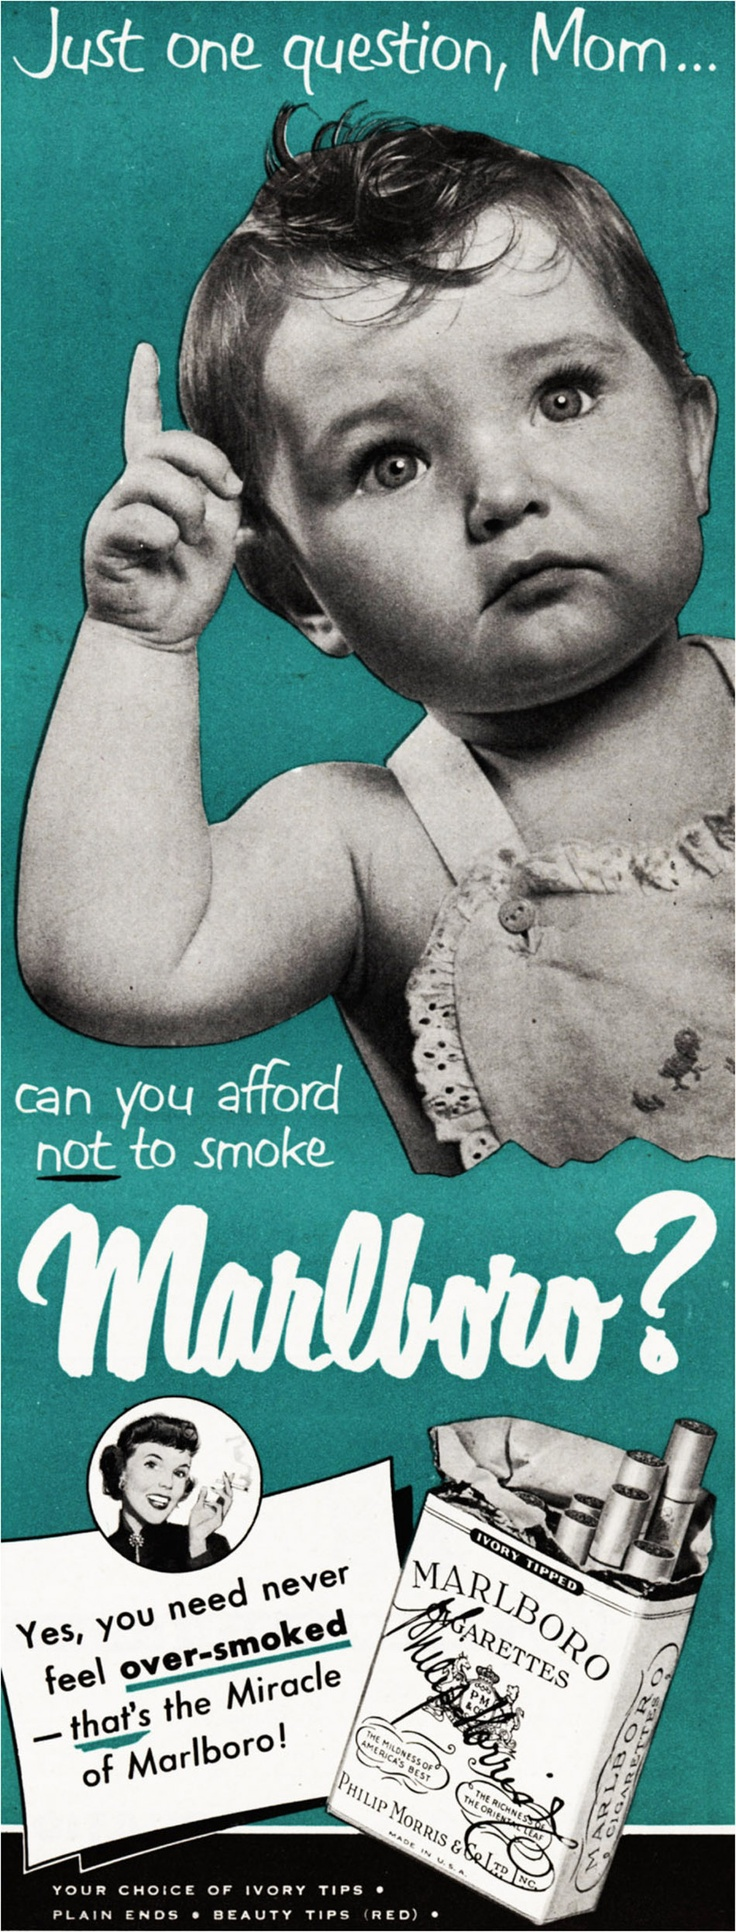 Vintage ad - Oh you cheeky cigarette manufacturers!